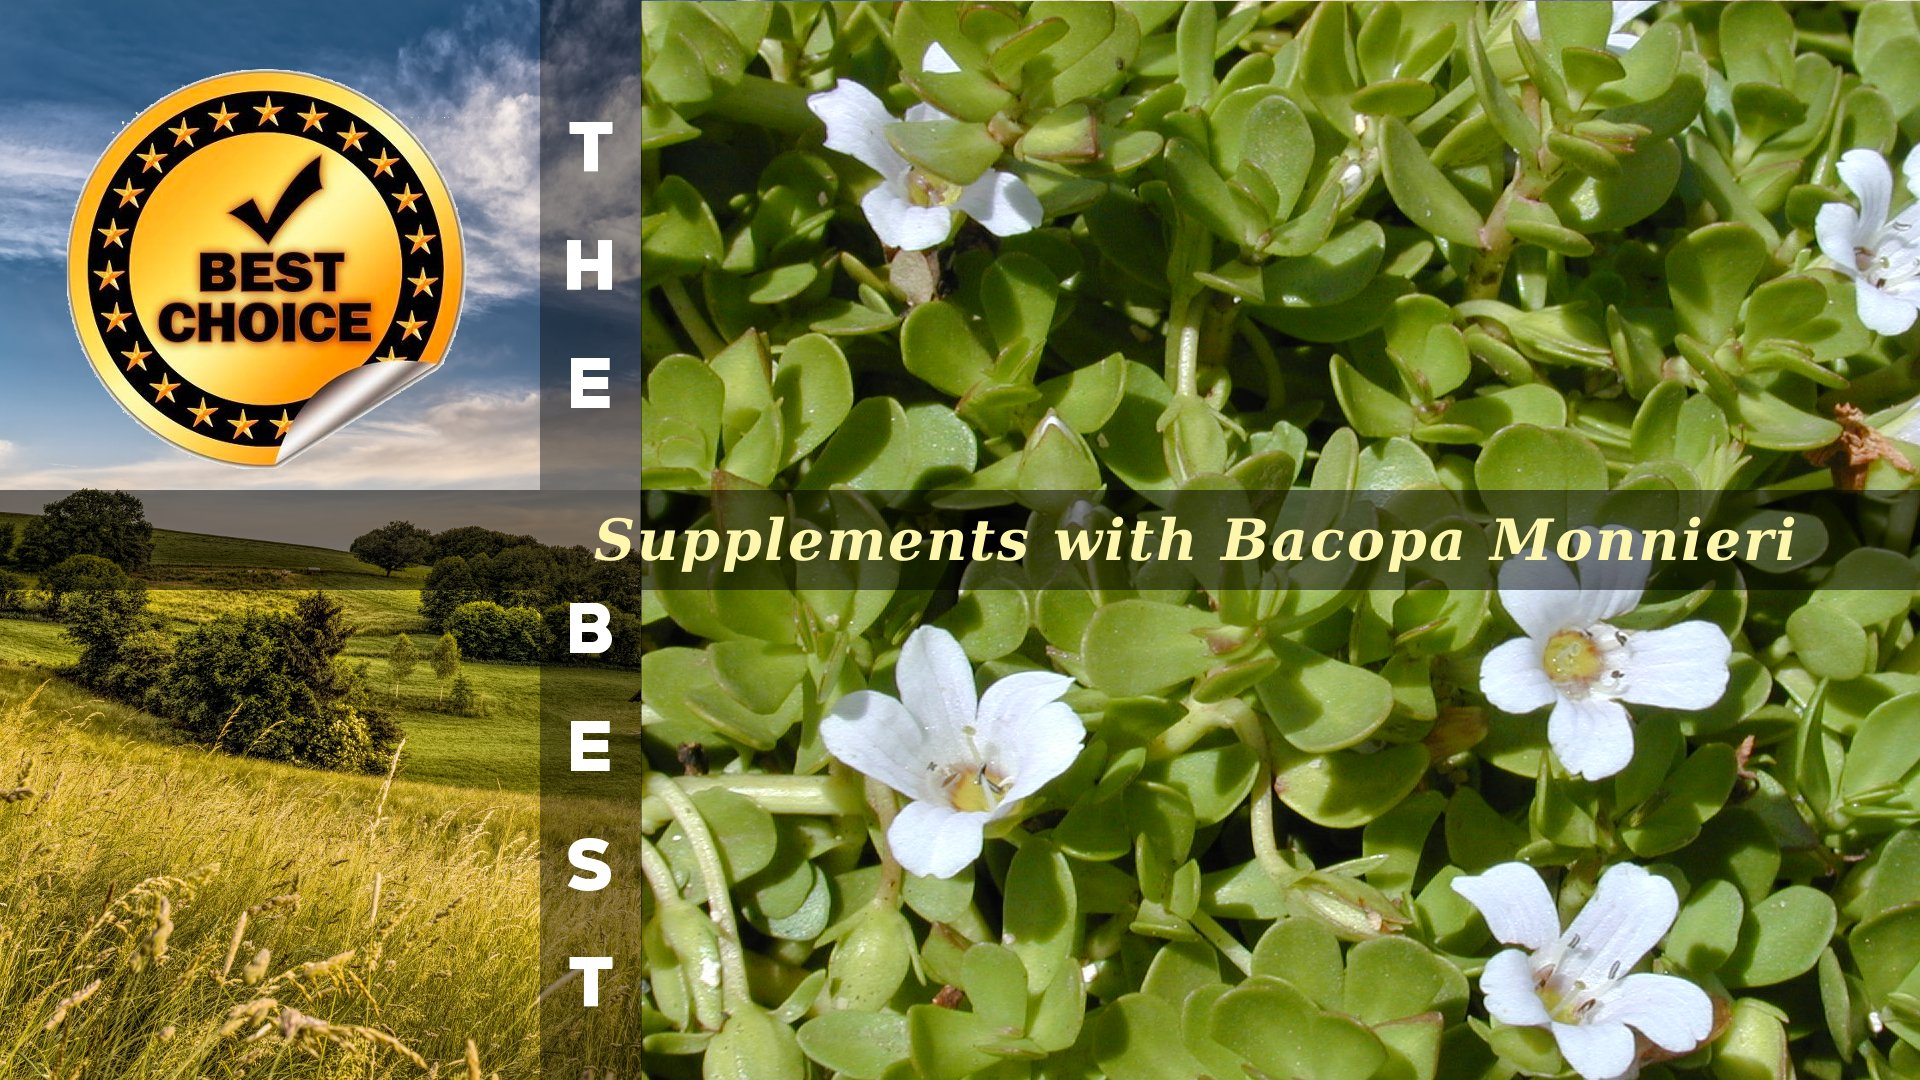 The Supplements with Bacopa Monnieri